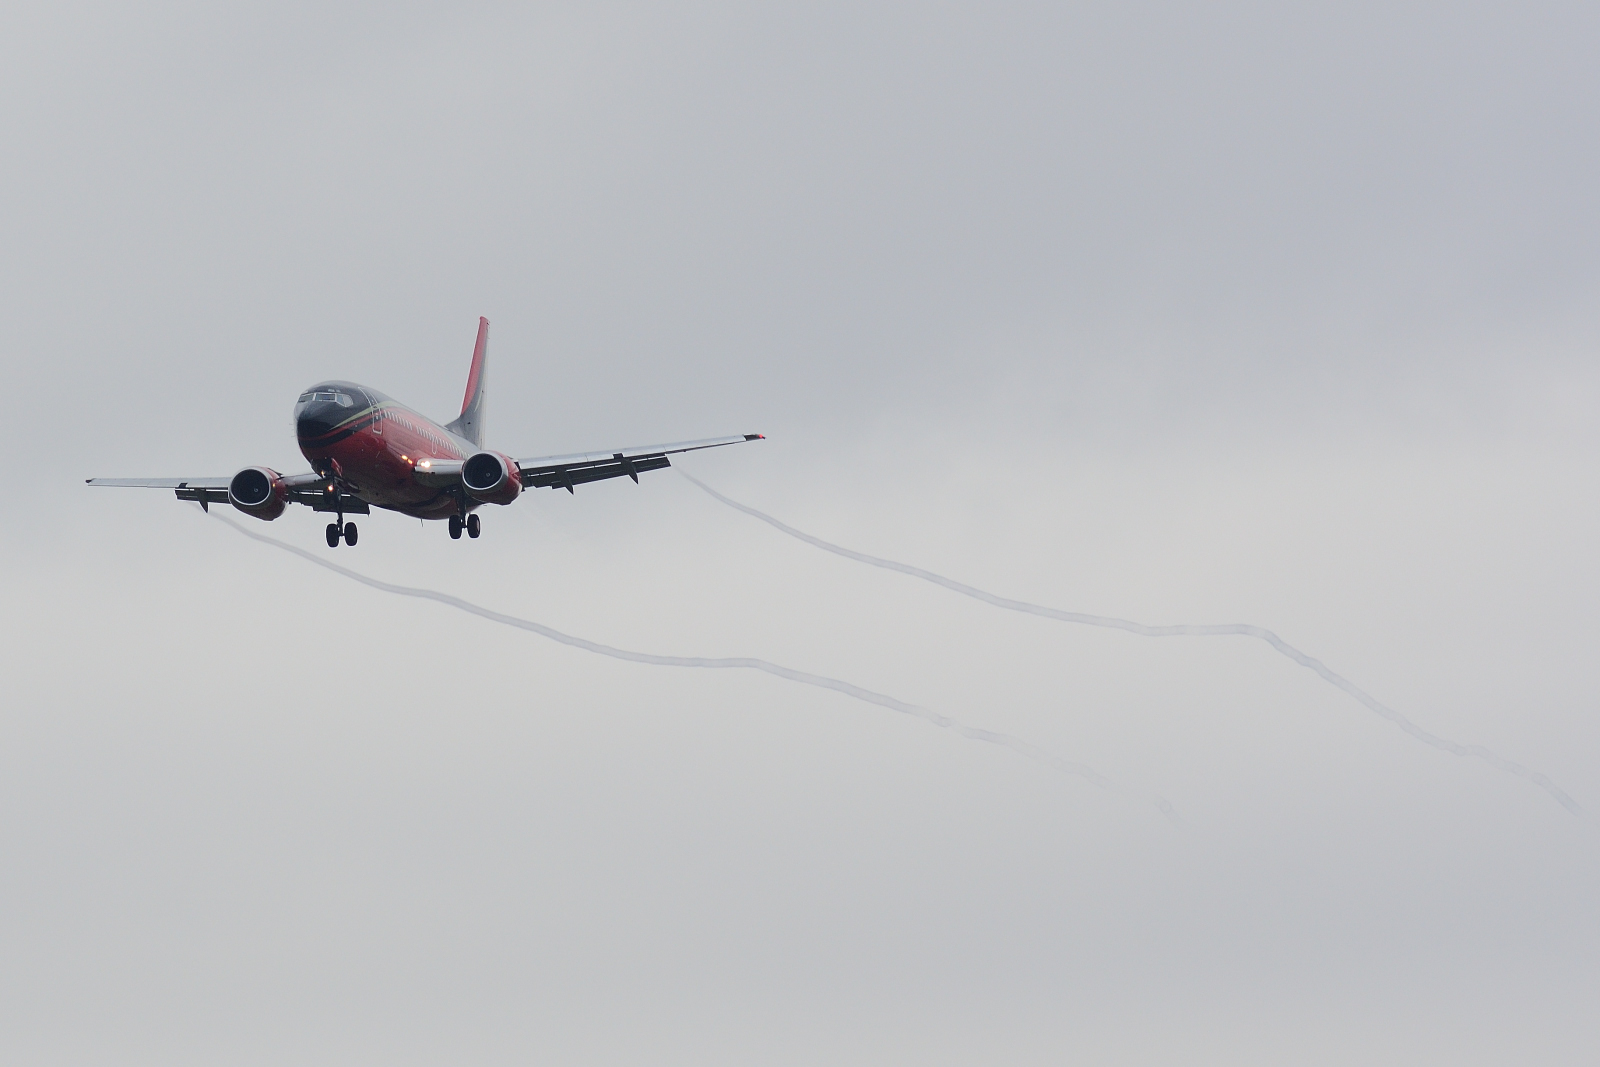 Boeing 737, LY-KDT